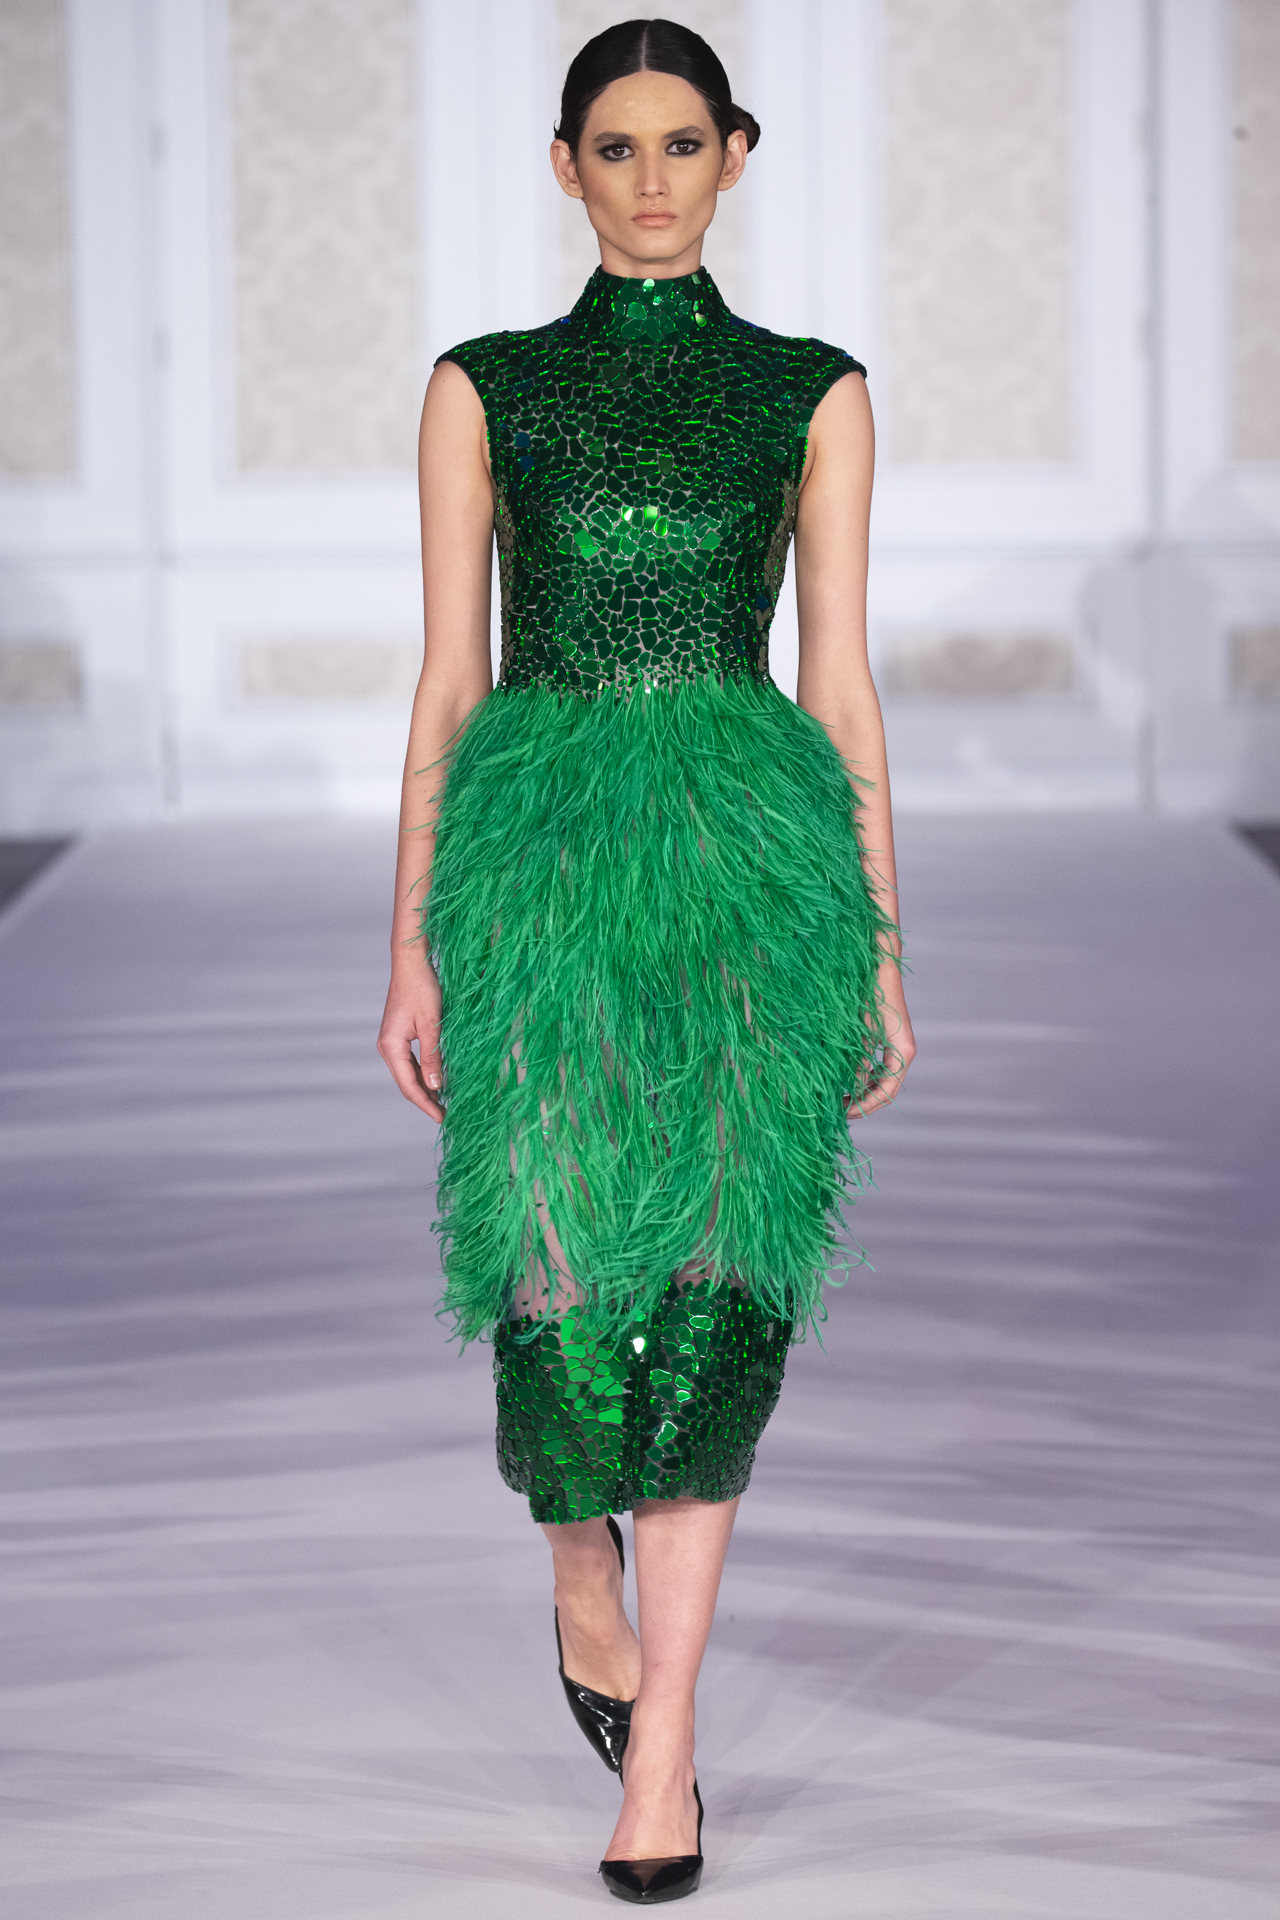 atelier zuhra   AW19 - A treasure-trove of jewel-tones in feathers, silk, satin and tulle.These gowns are the stuff of dreams. Vivid, technicolour dreams, that is. Every stone, from emerald to amethyst, ruby to sapphire and yellow diamond, were represented in these fantasy fashion frocks.One model, one dress. The extravagance was real, and the setting, The Connaught Rooms, suitably opulent.Photos: Simon Armstrong